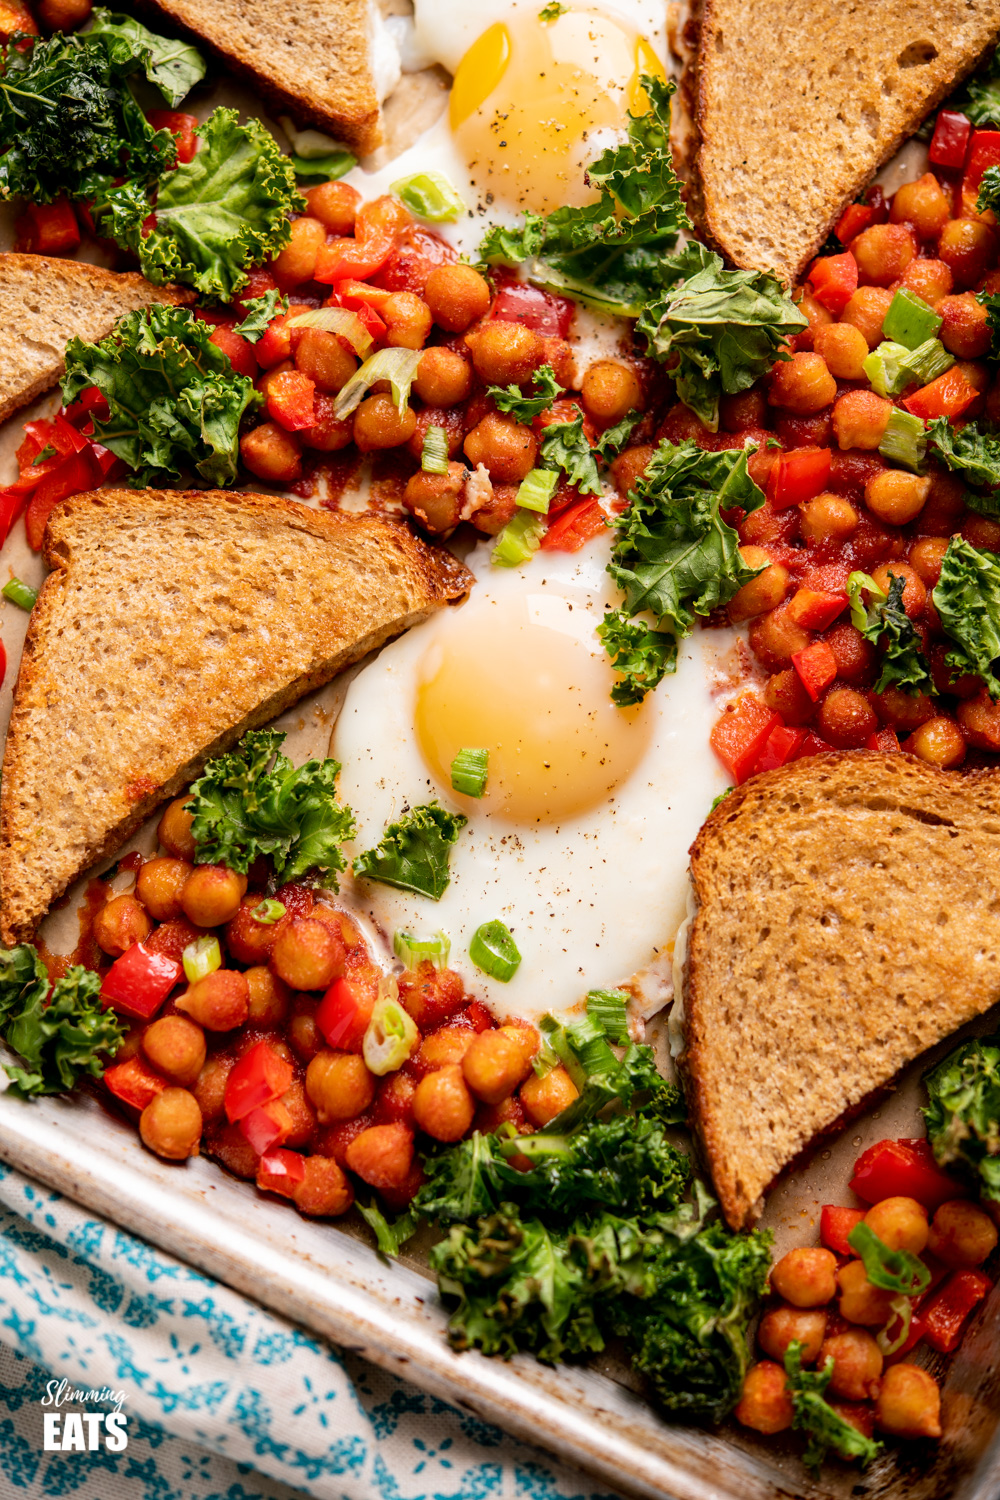 chickpeas, egg and kale on tray with crispy toast